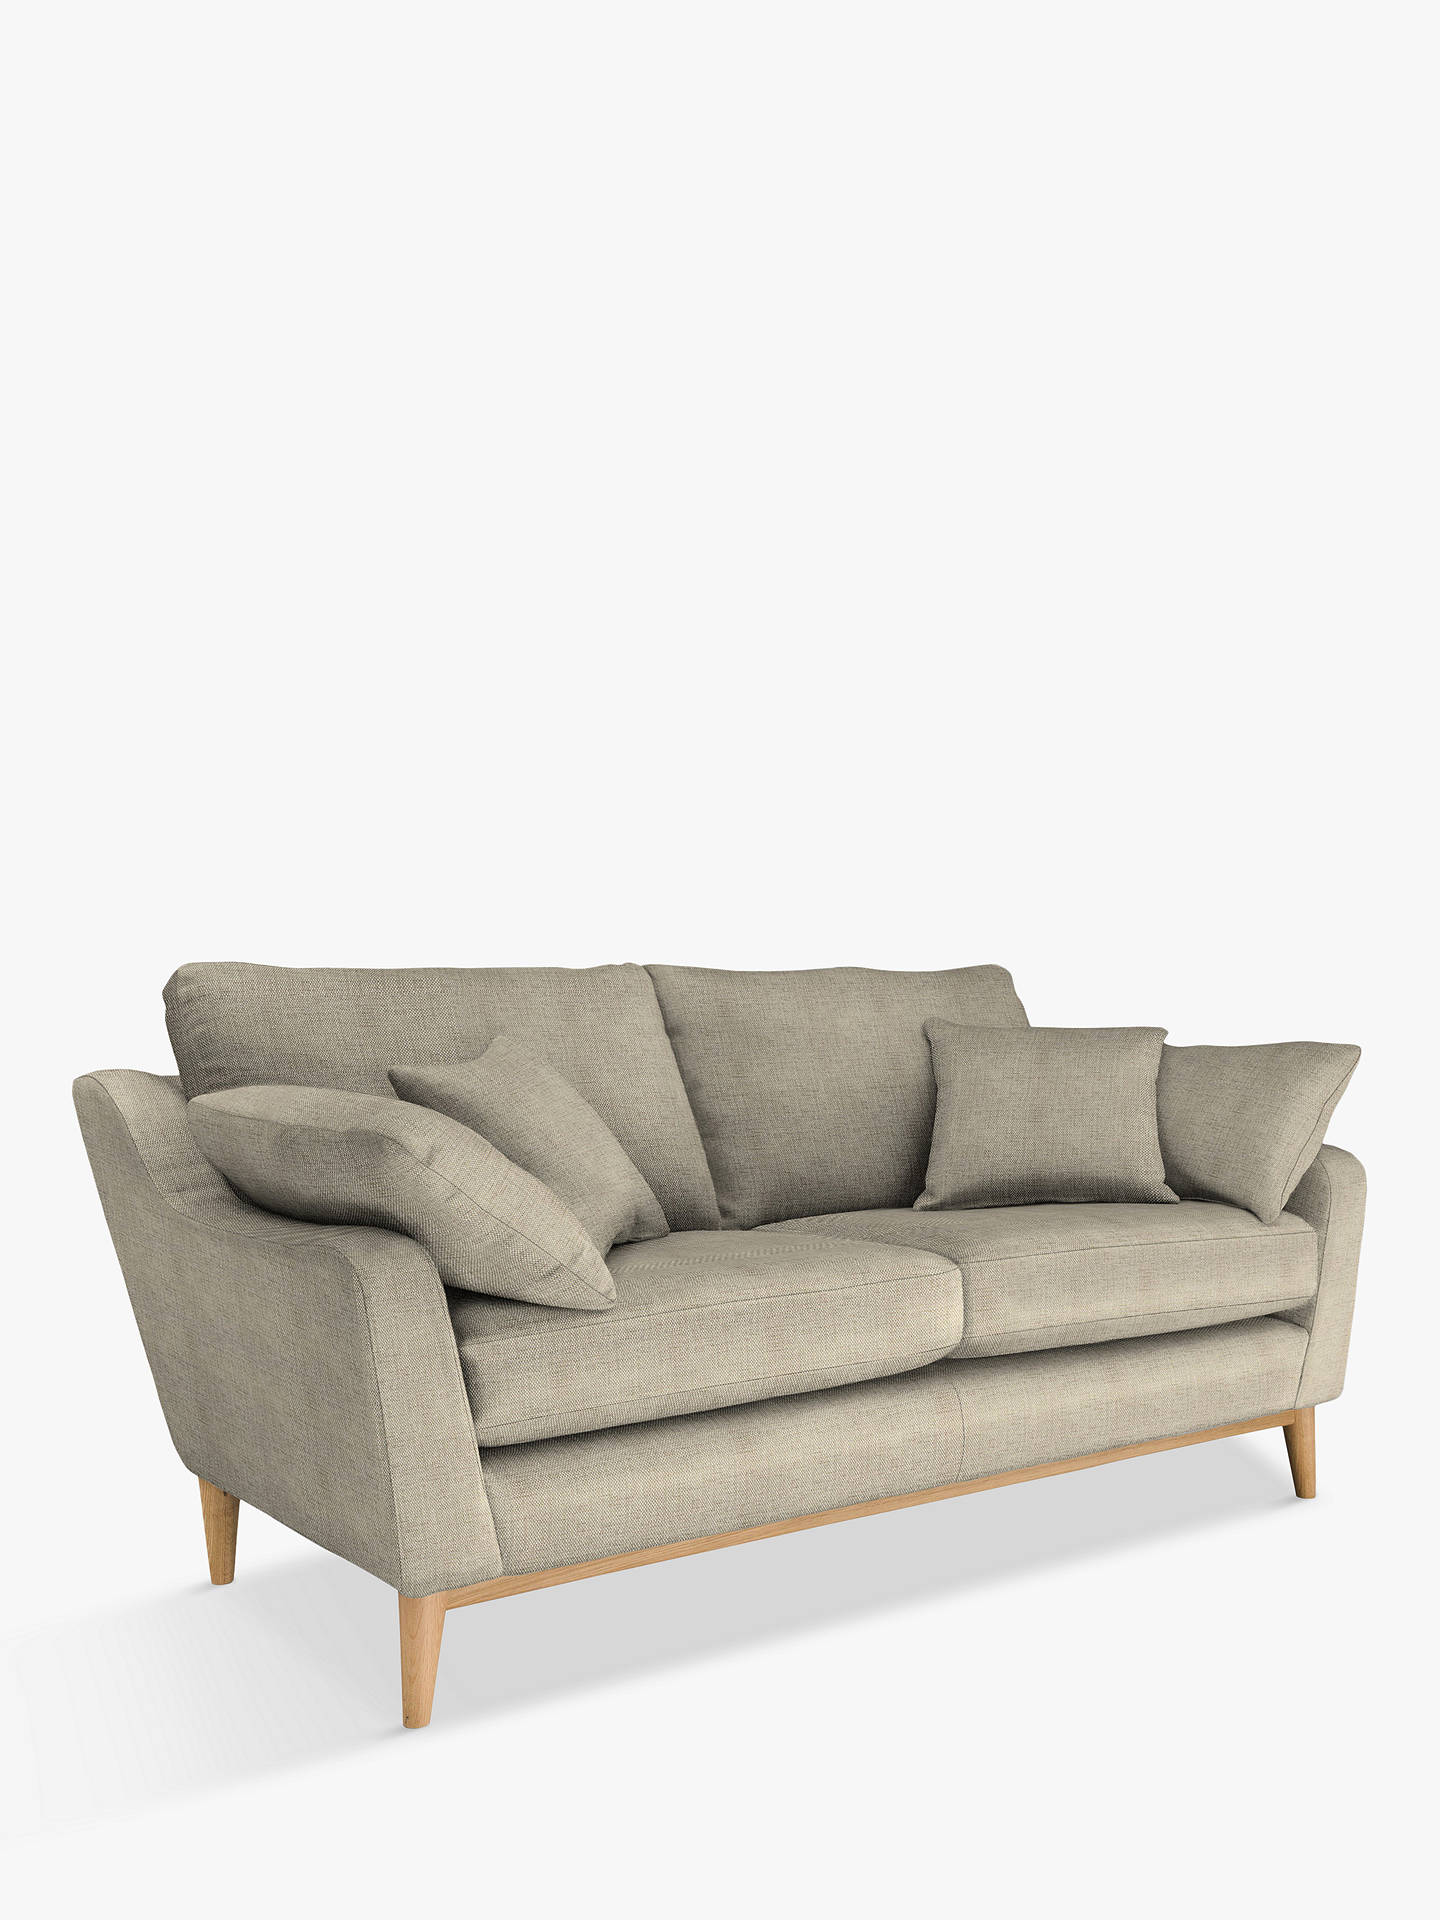 Ercol For John Lewis Nto 3 Seater Sofa Maria Oyster Online At Johnlewis